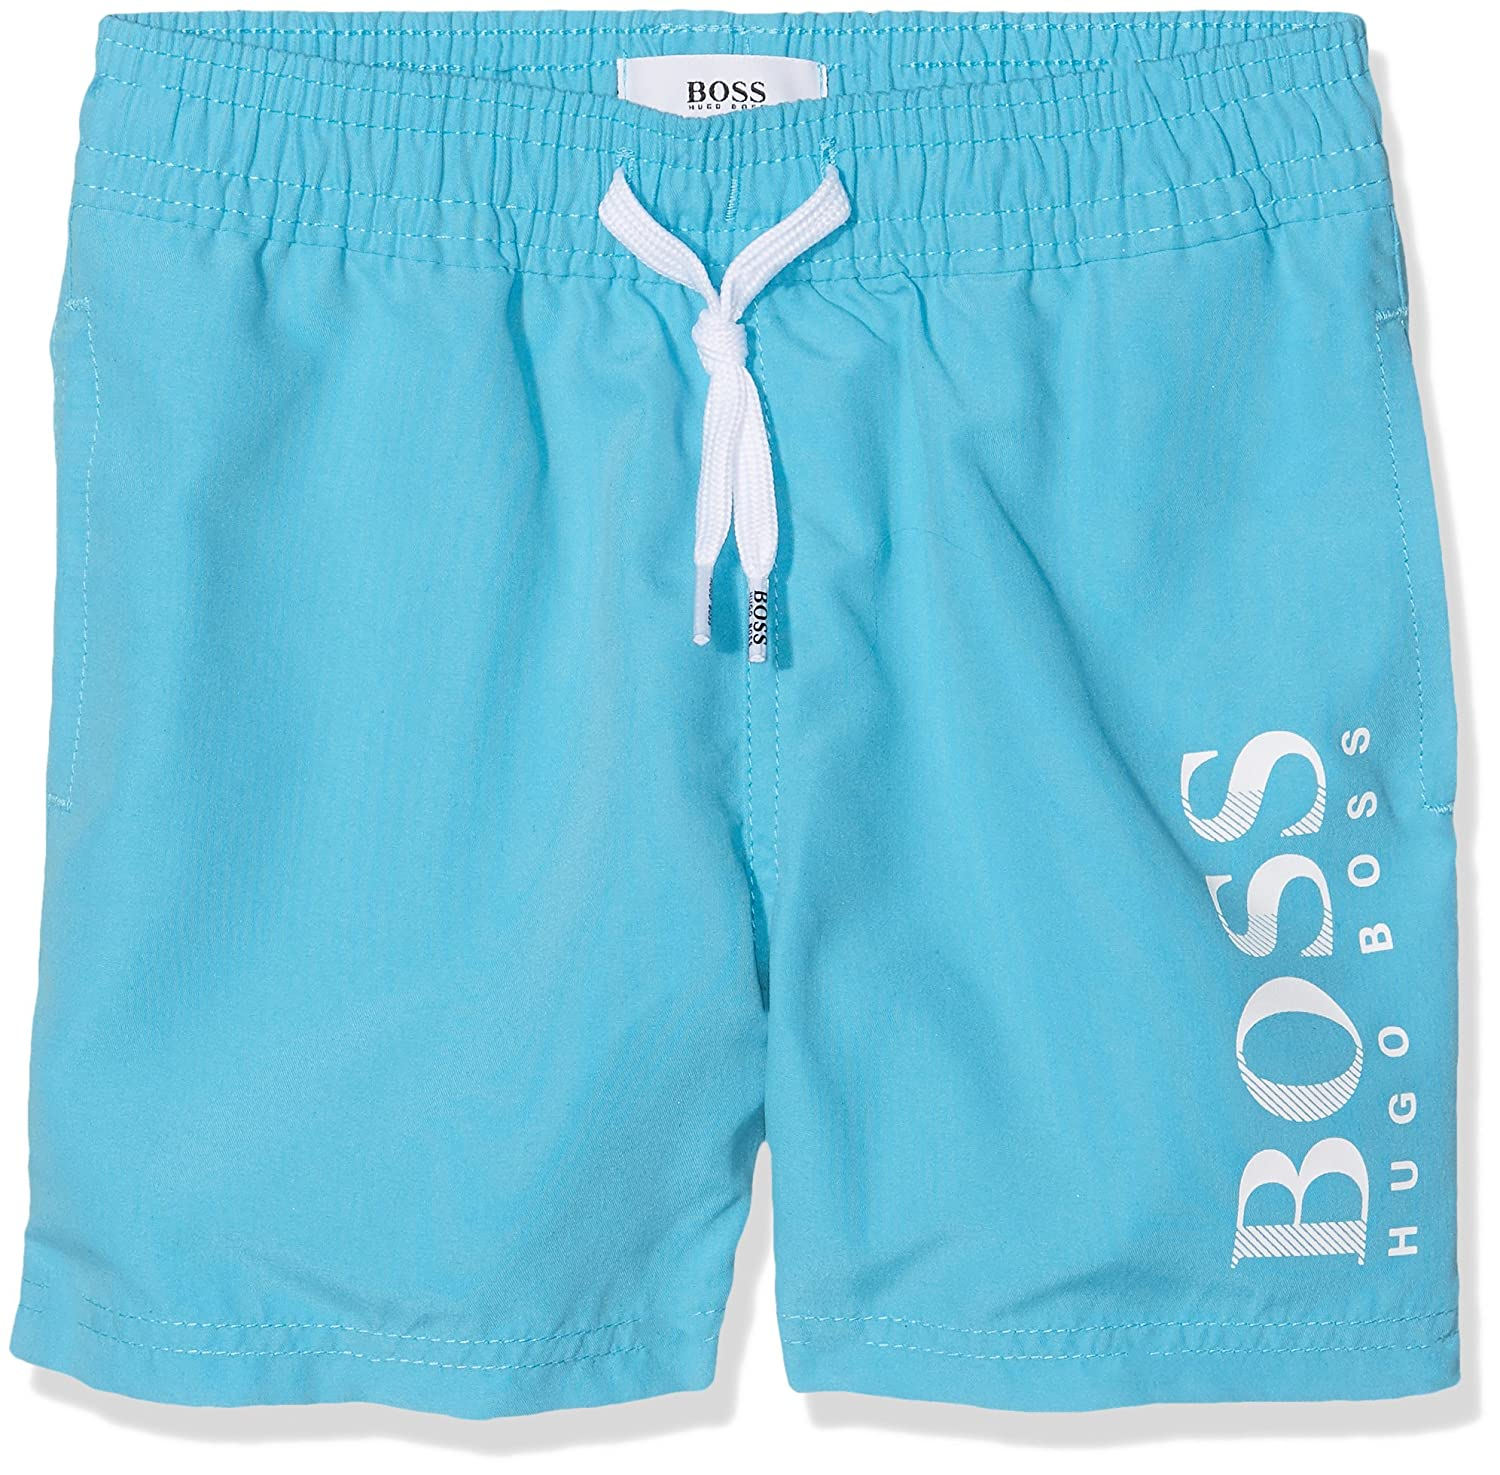 BOSS Baby Boys' Swim Trunks J04310